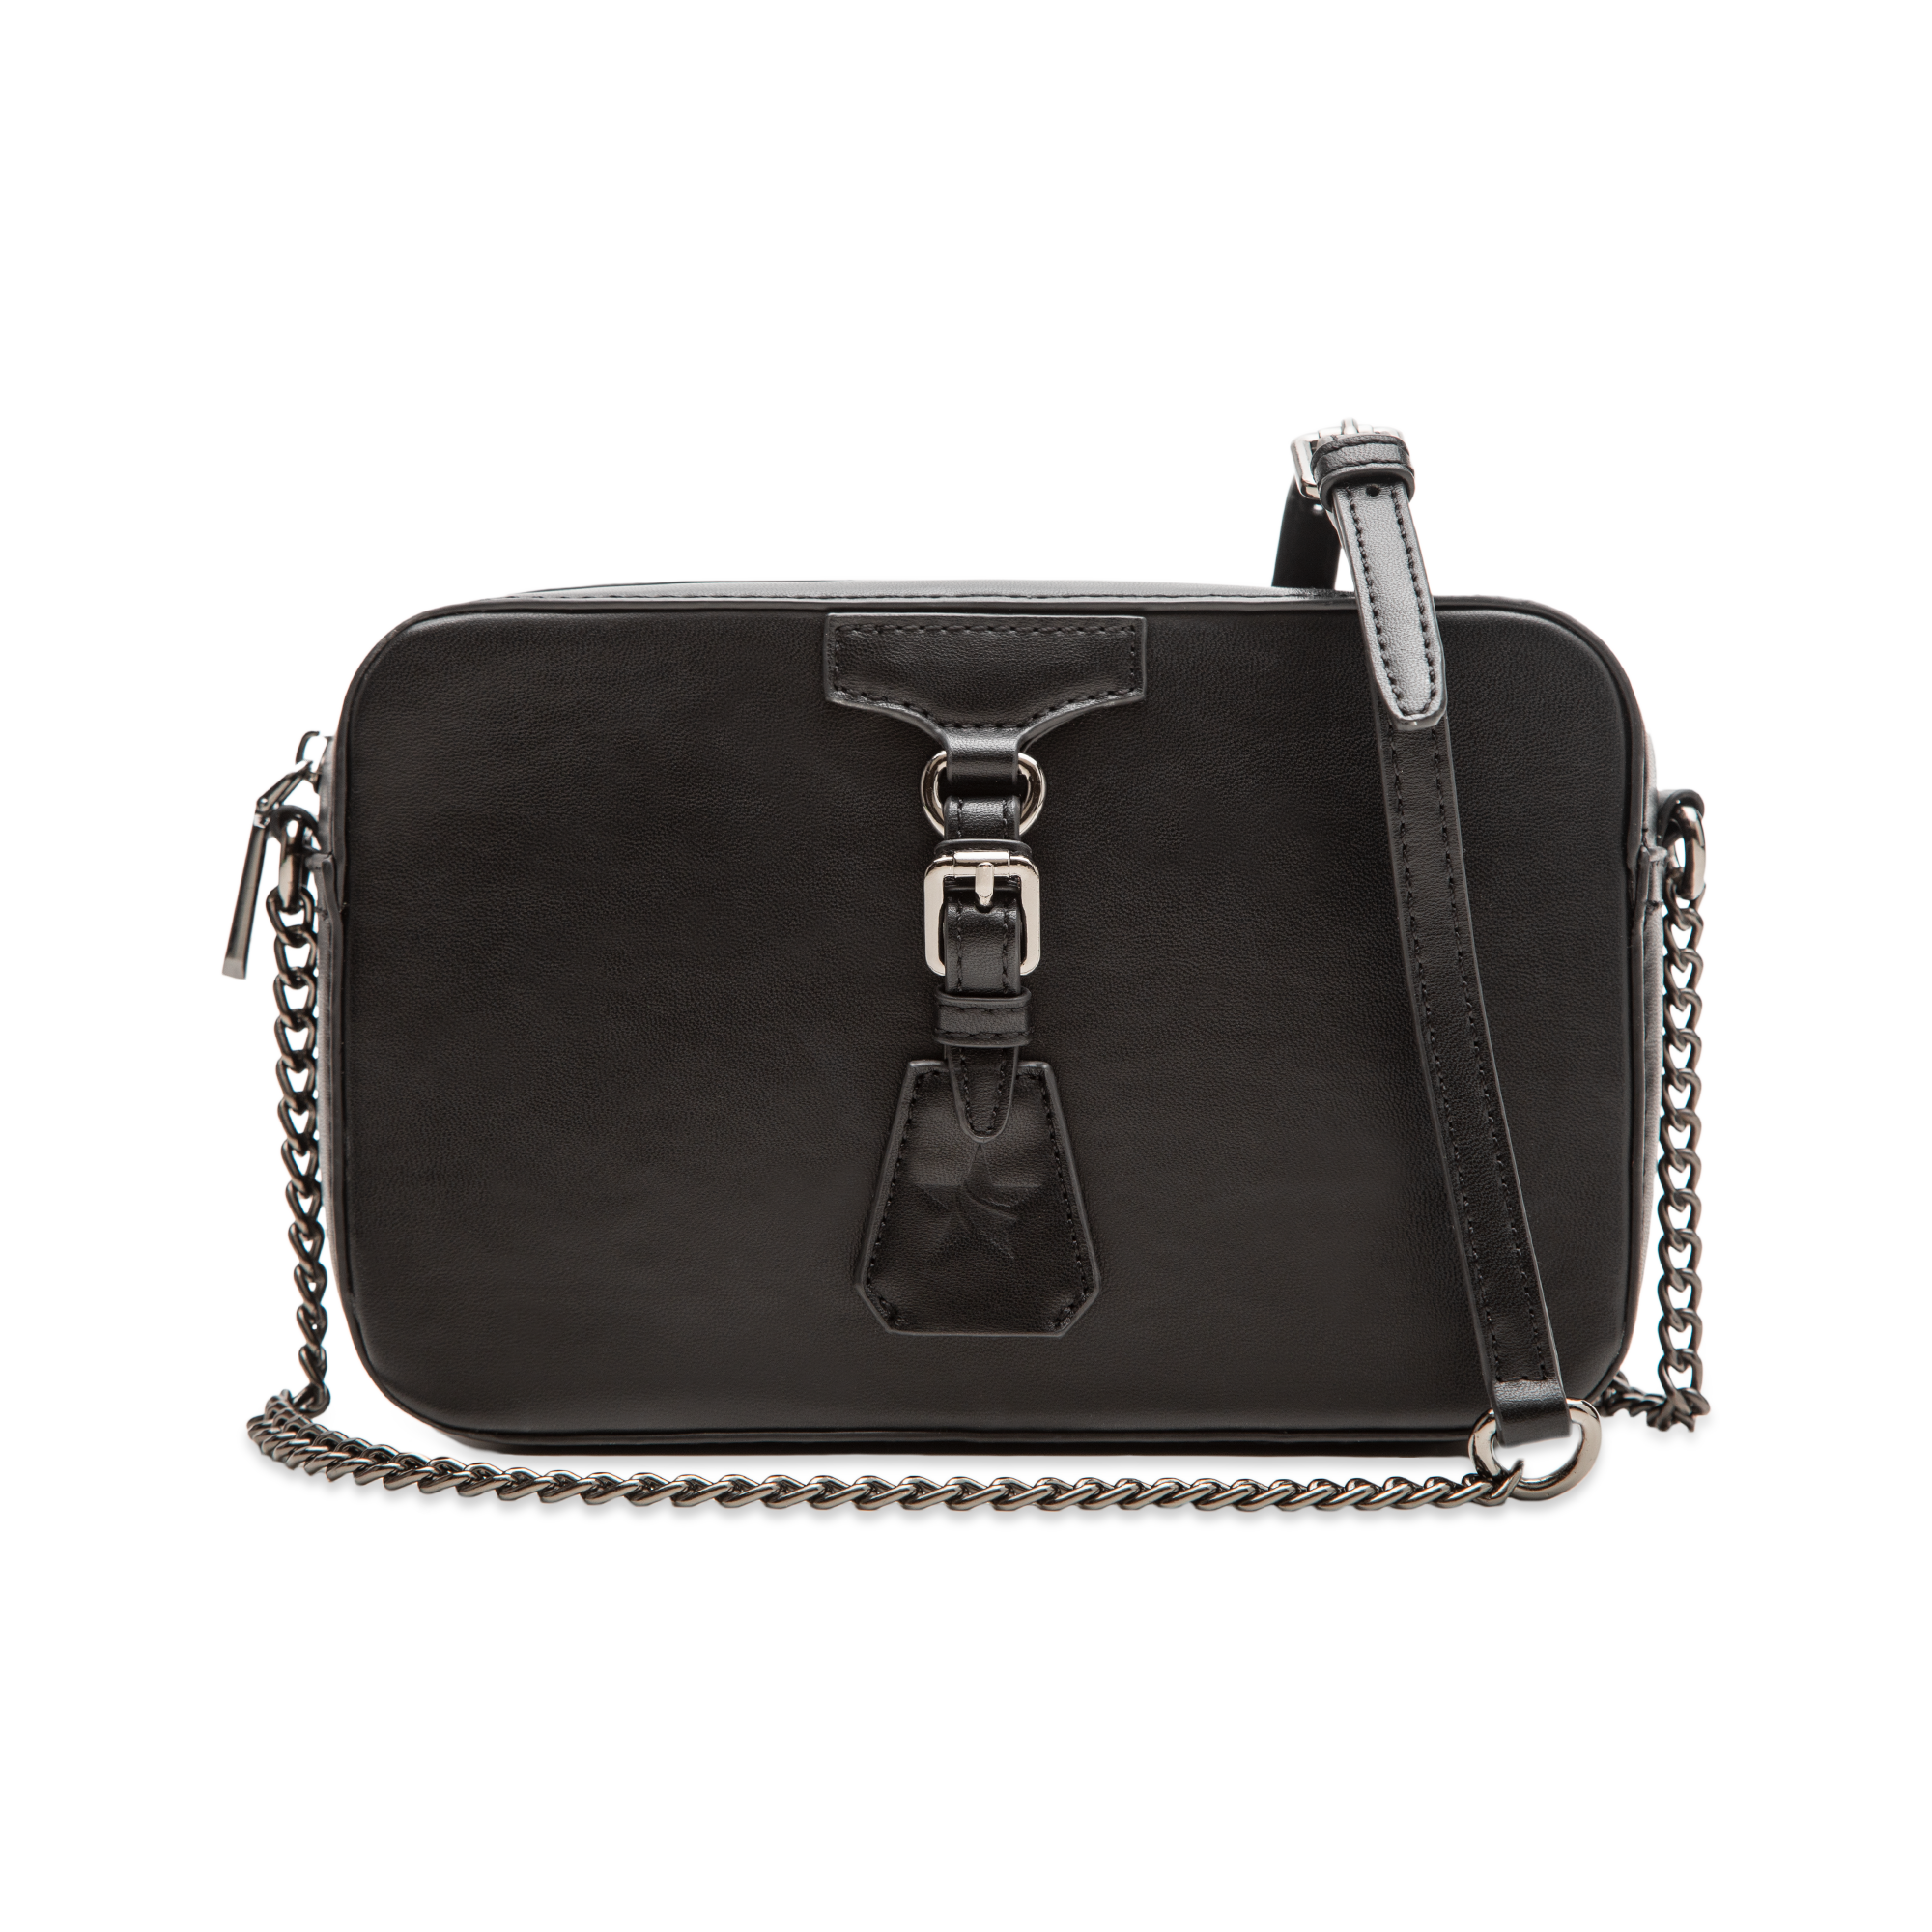 Camera bag nera con tracolla, ecopelle